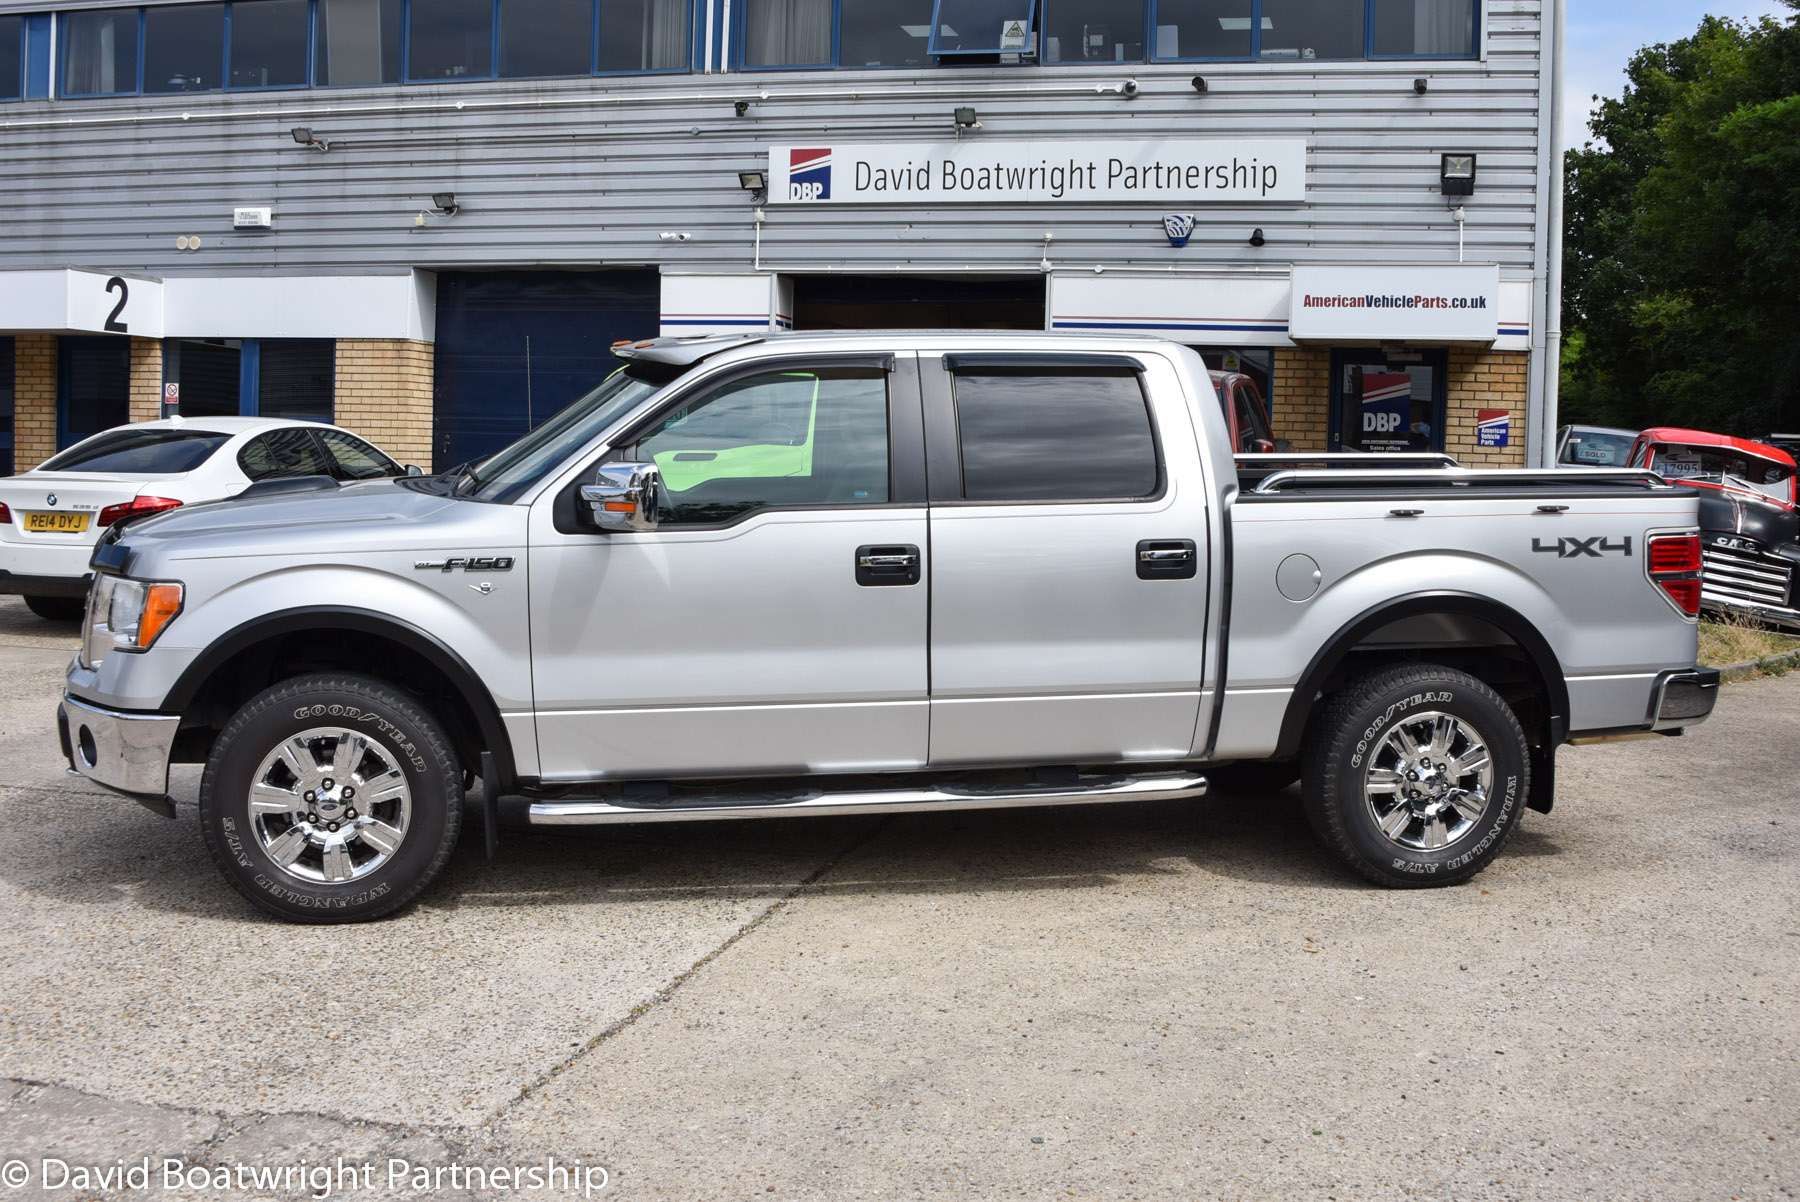 2017 Ford F 150 For Sale >> 2009 F150 XLT Supercrew 4×4 – 23,000 Miles – David ...